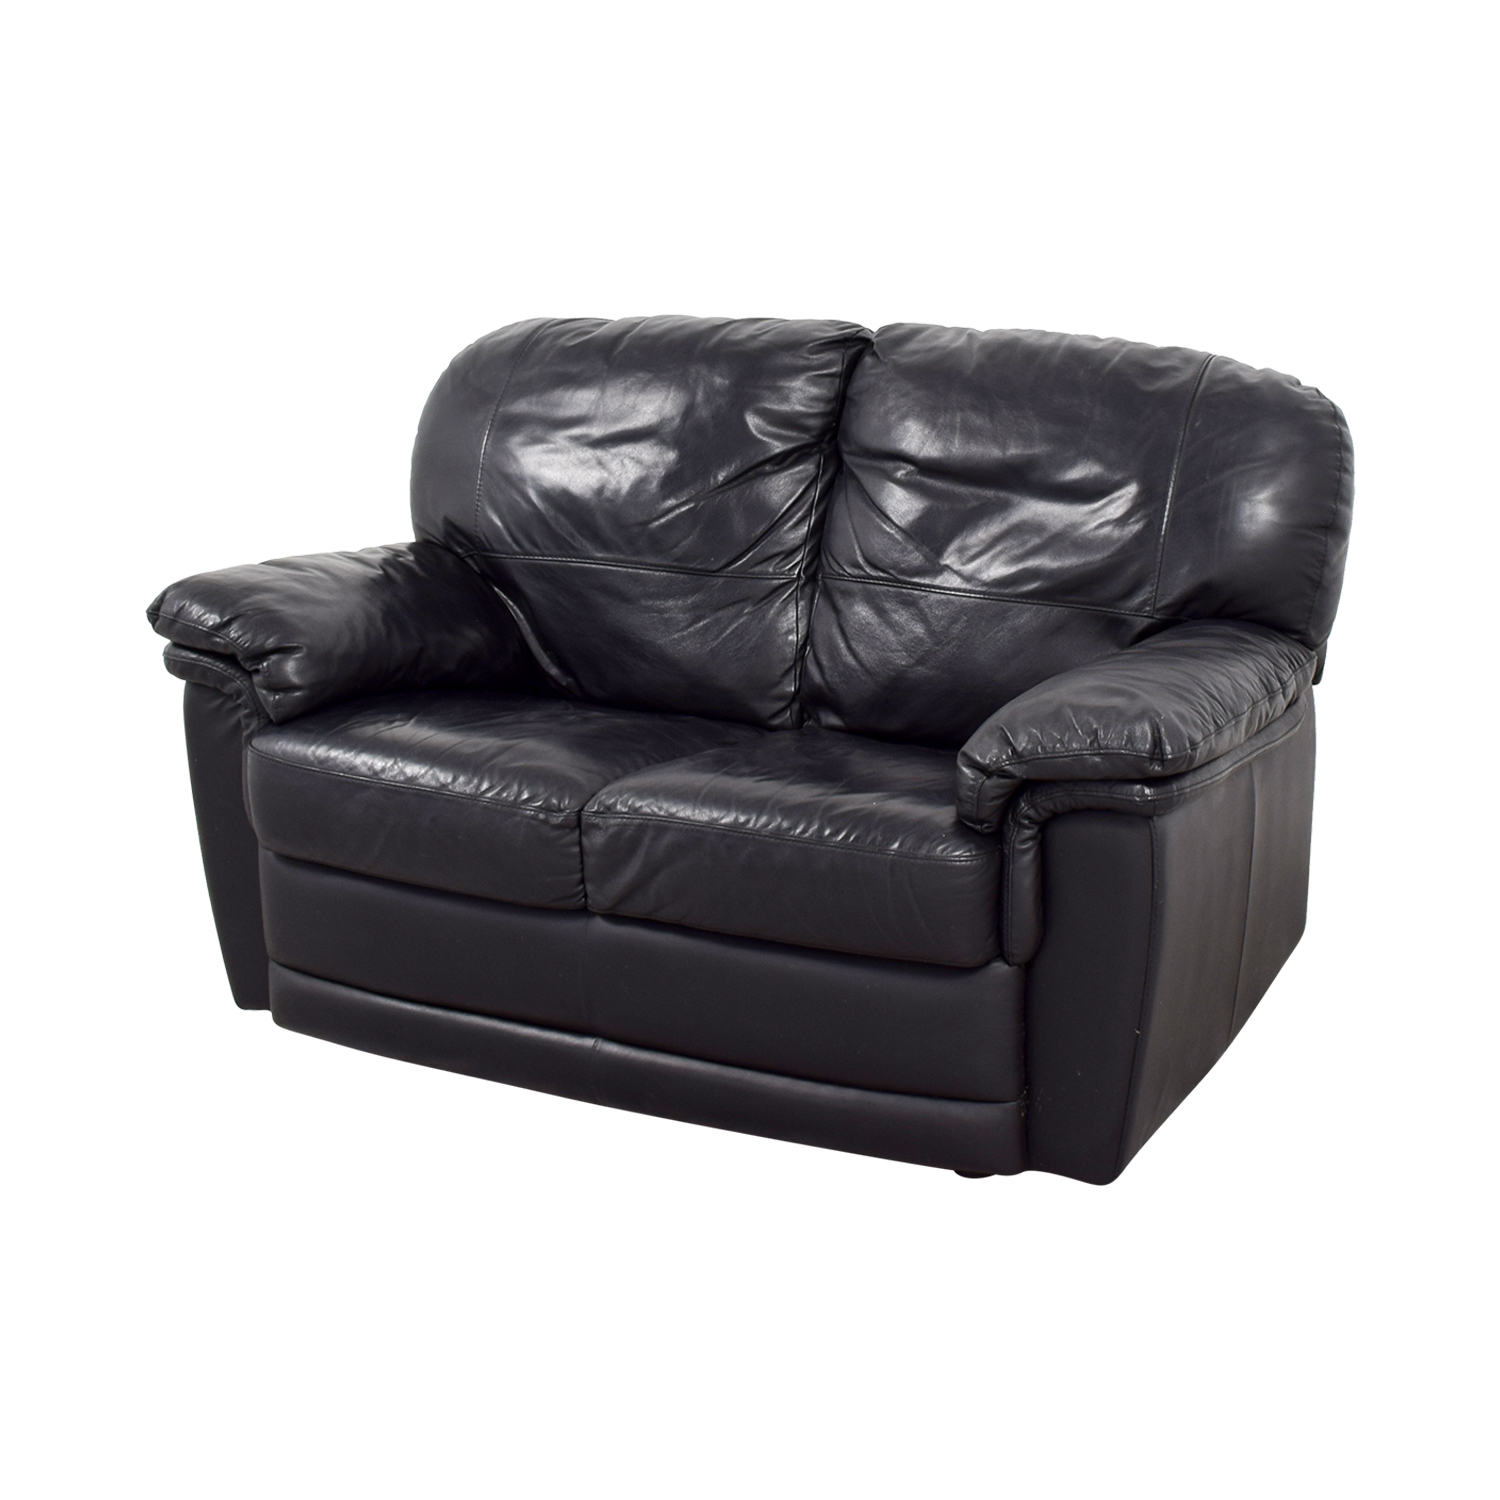 Leather Sofa And Loveseat For Sale | Drummon Leather Sofa And Loveseat